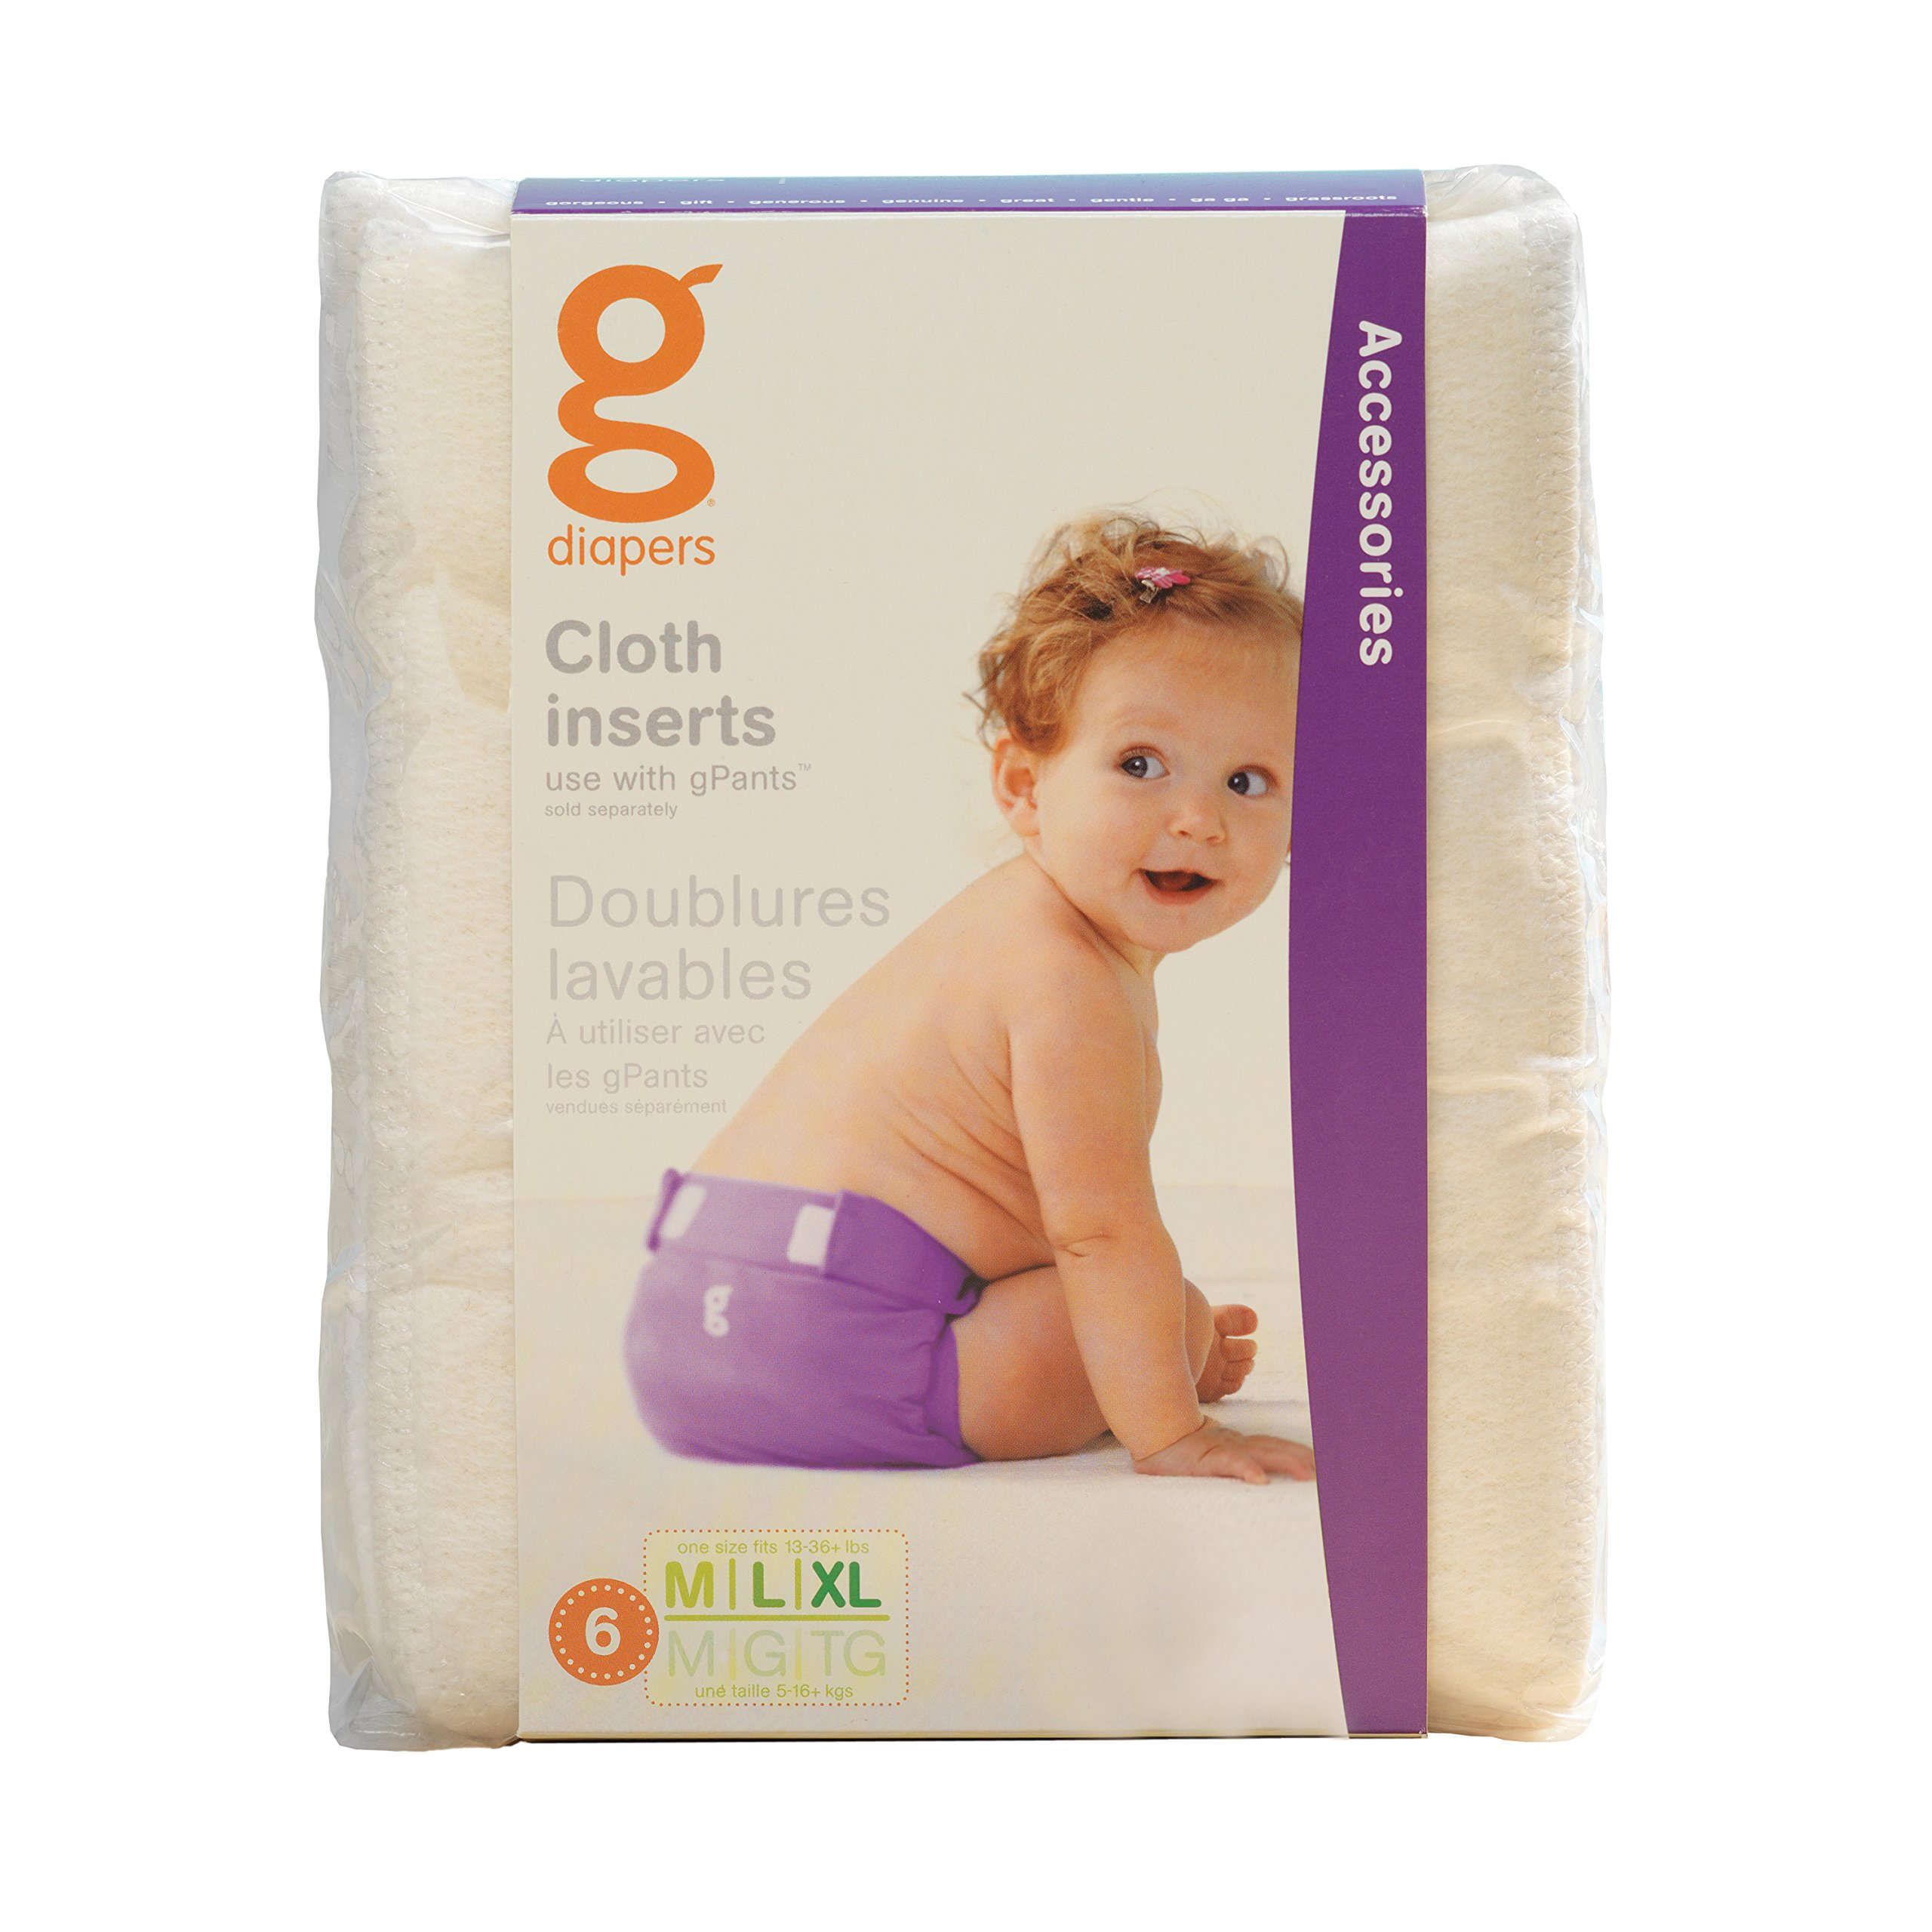 gDiapers Cloth Inserts, Medium/Large/X-Large (6 Count)